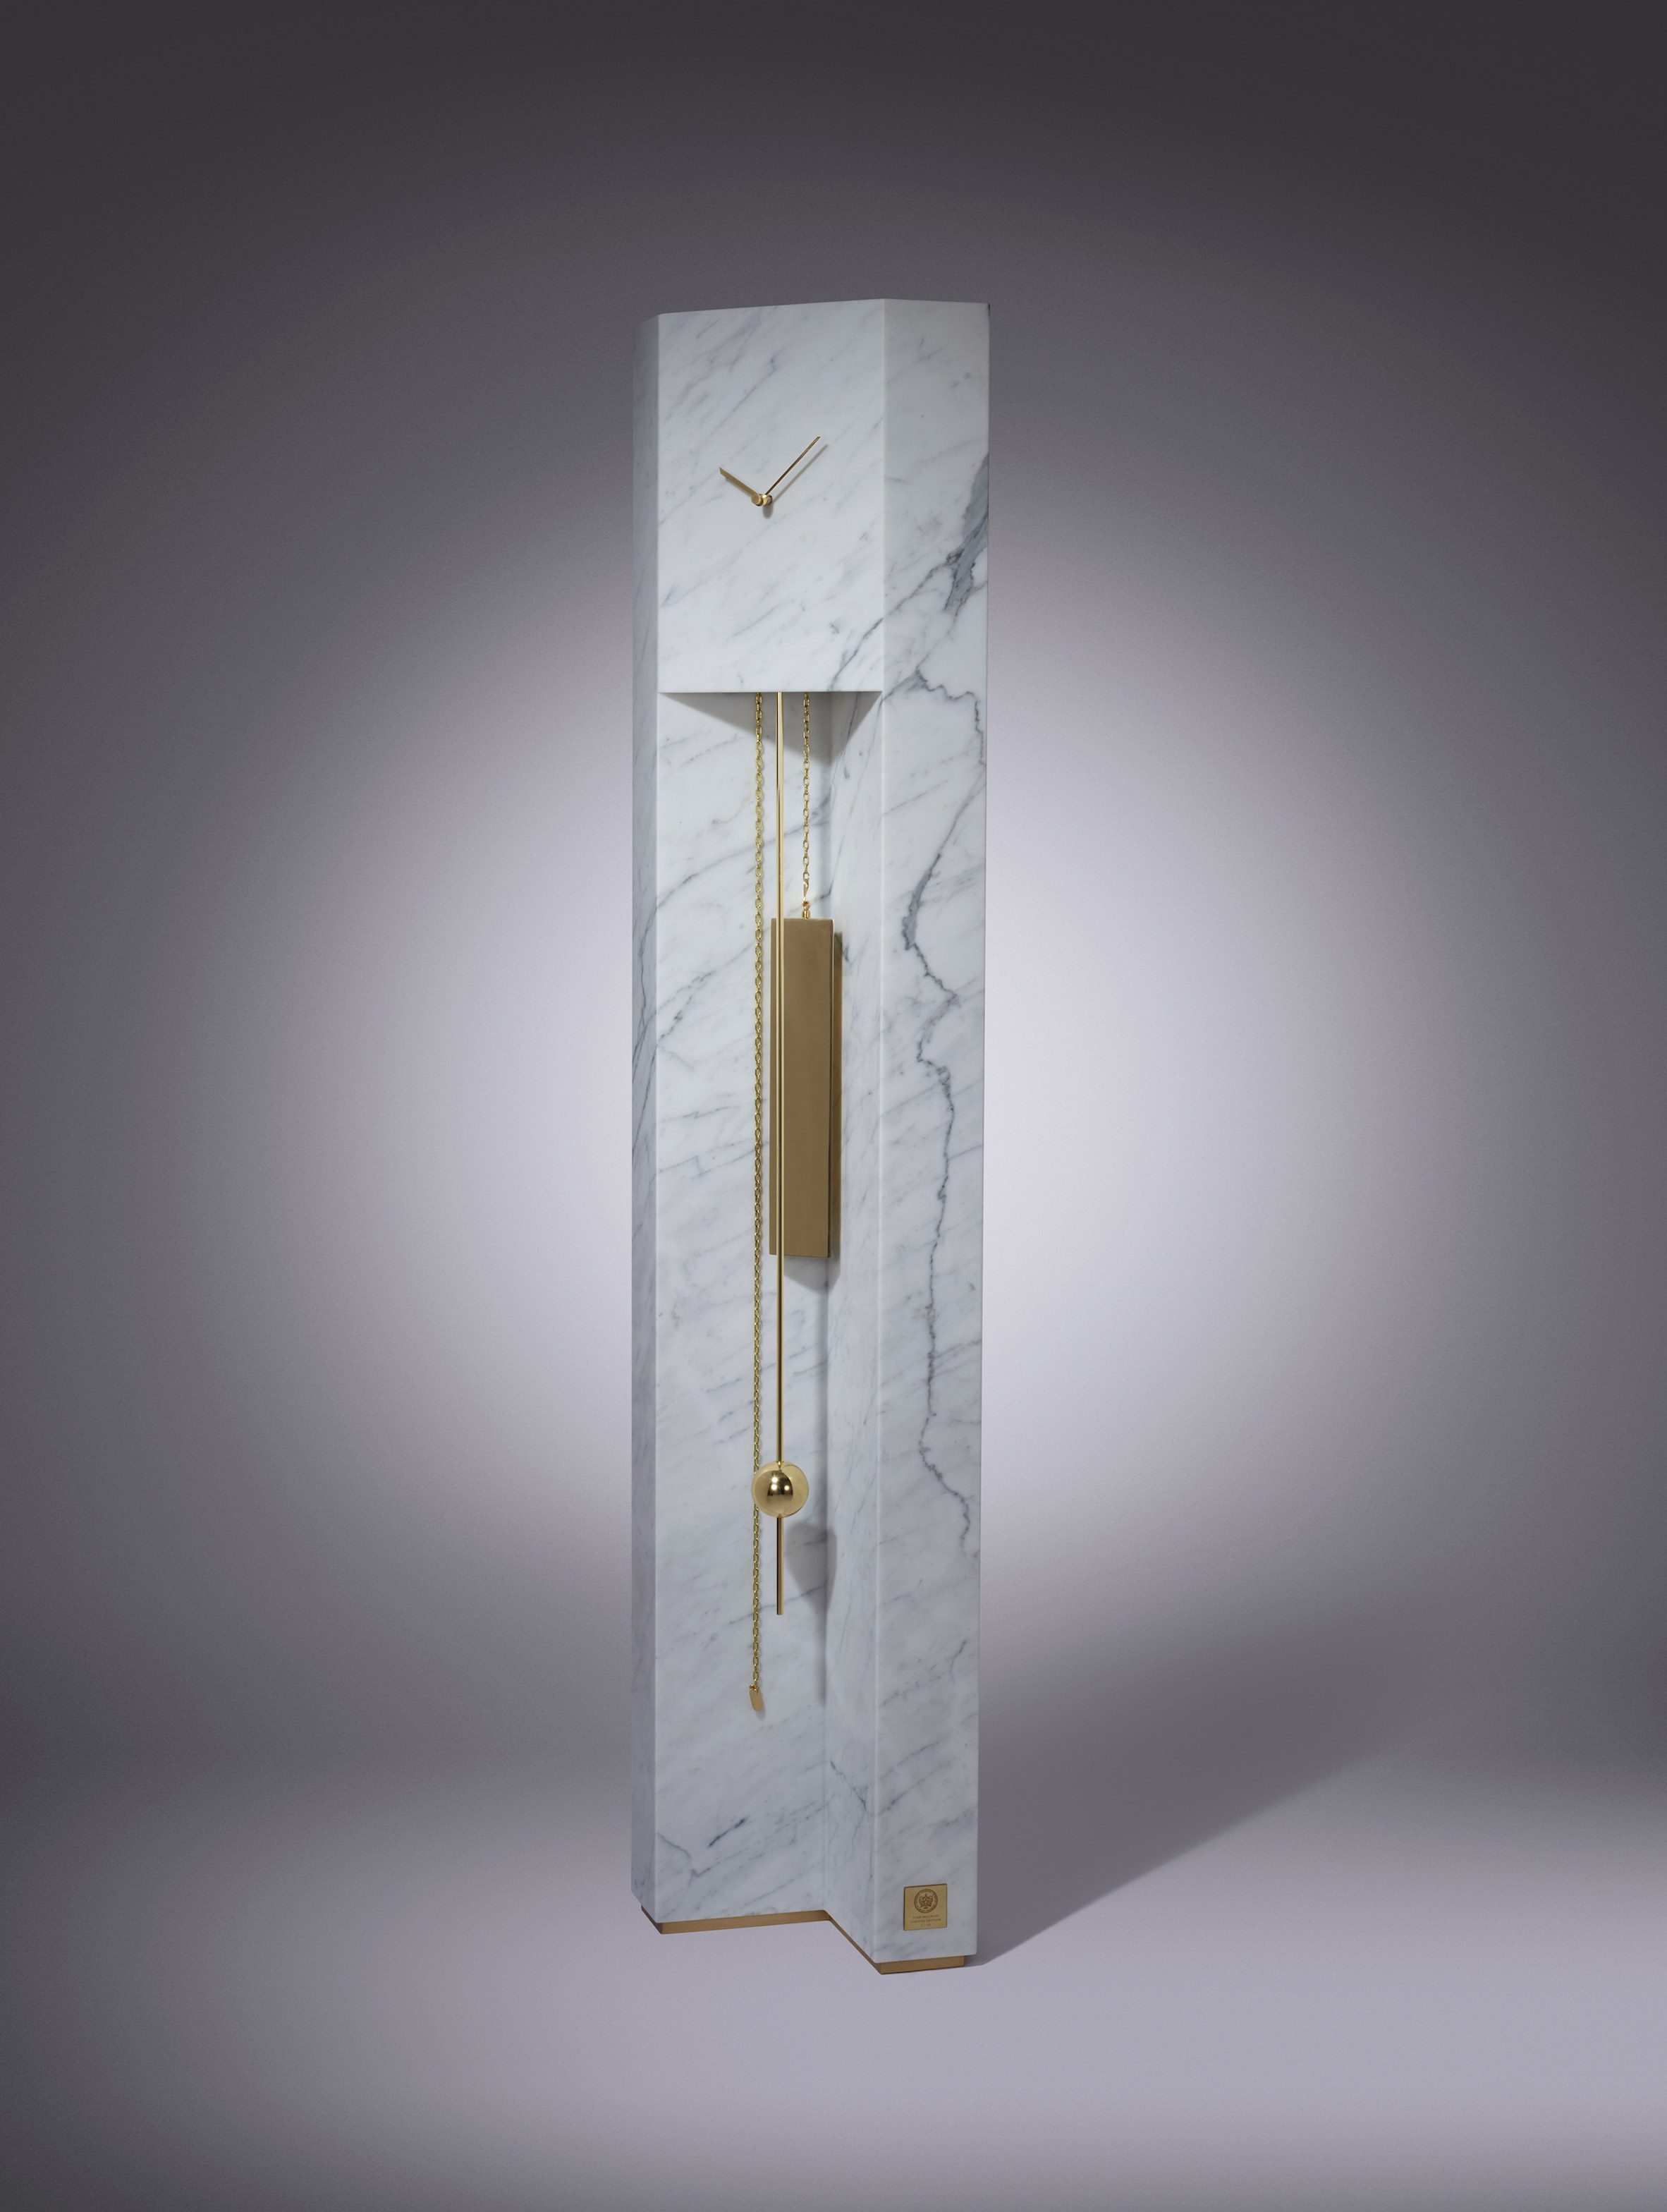 Lee Broom Time Machine Lee Broom Lee Broom and the Time Machine time machine grandfather clock lee broom milan 2017 design festival furniture dezeen 2364 col 2